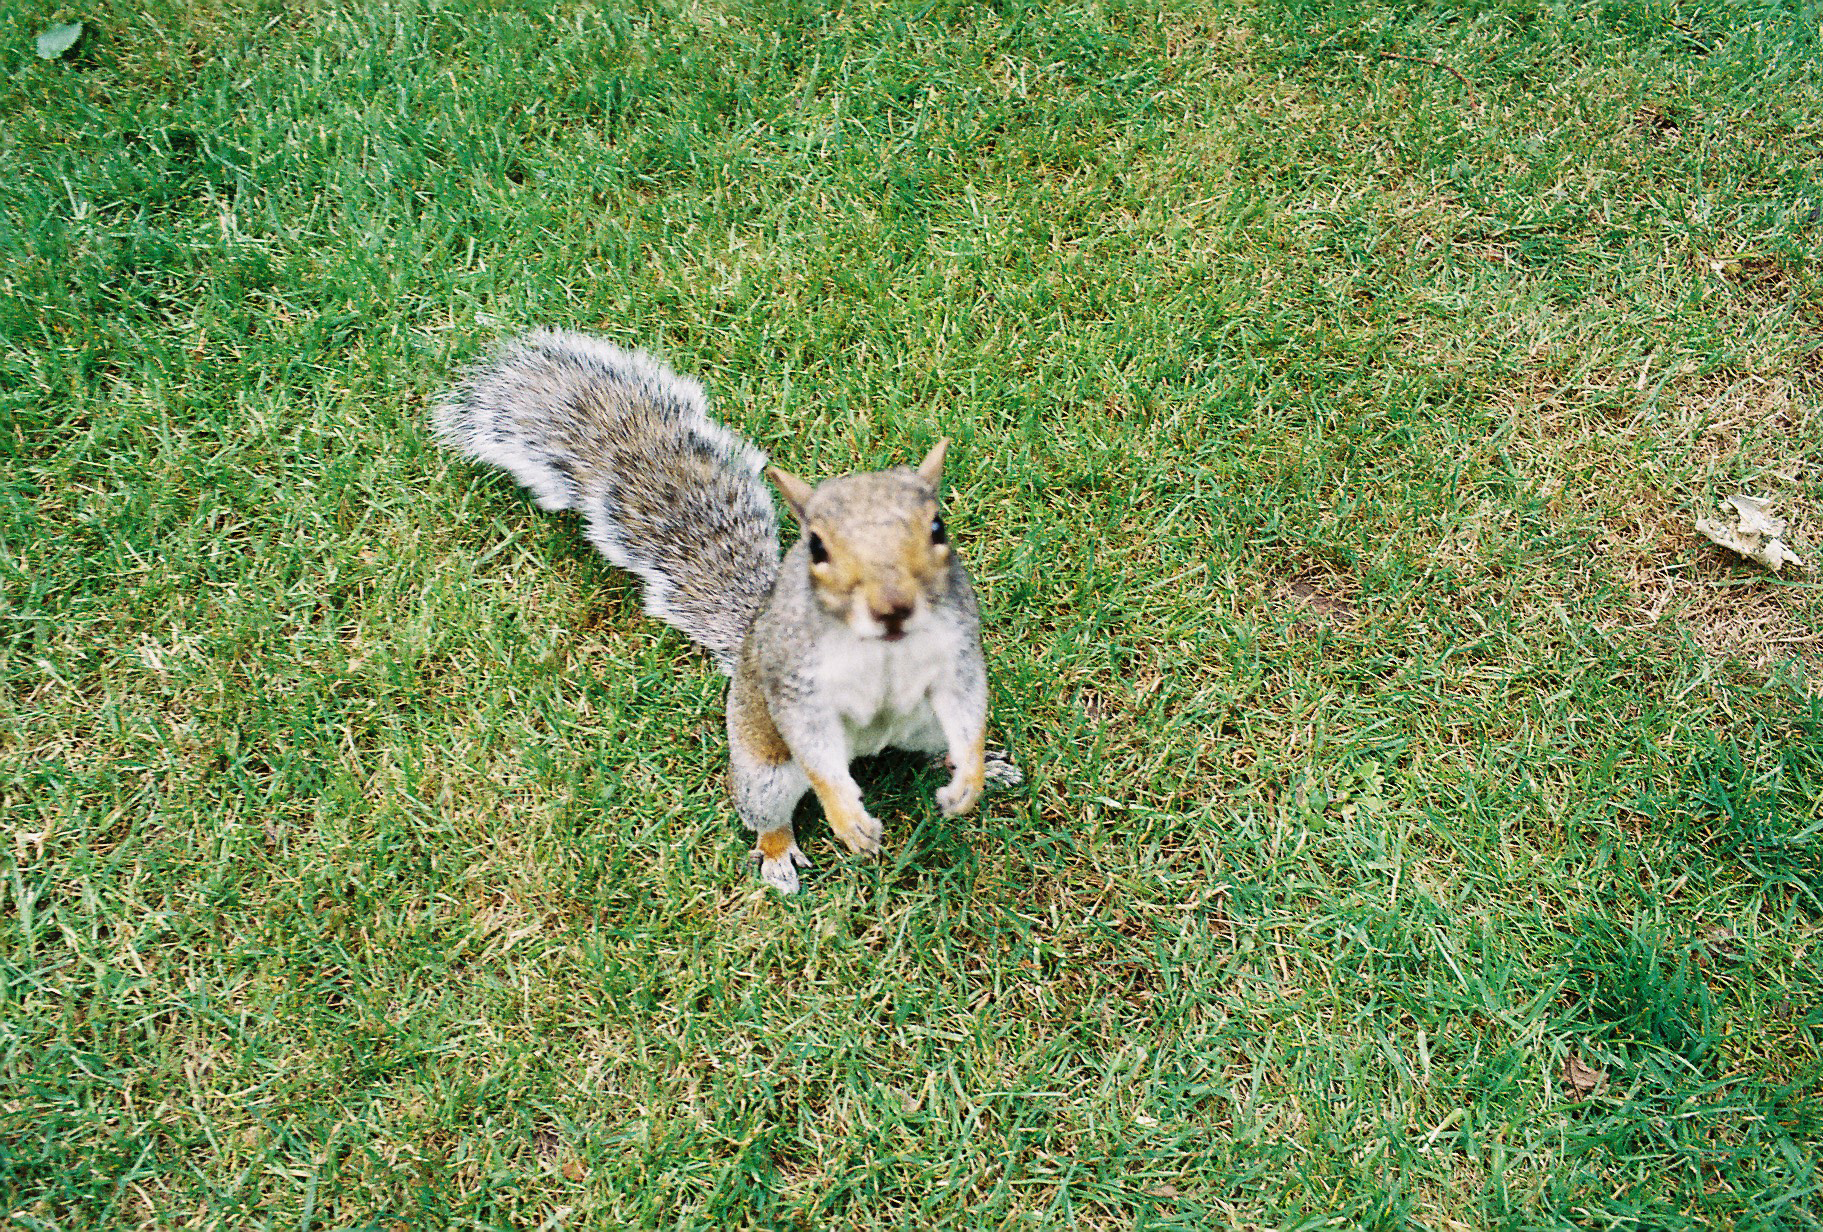 35mm Leamington Spa Squirrel